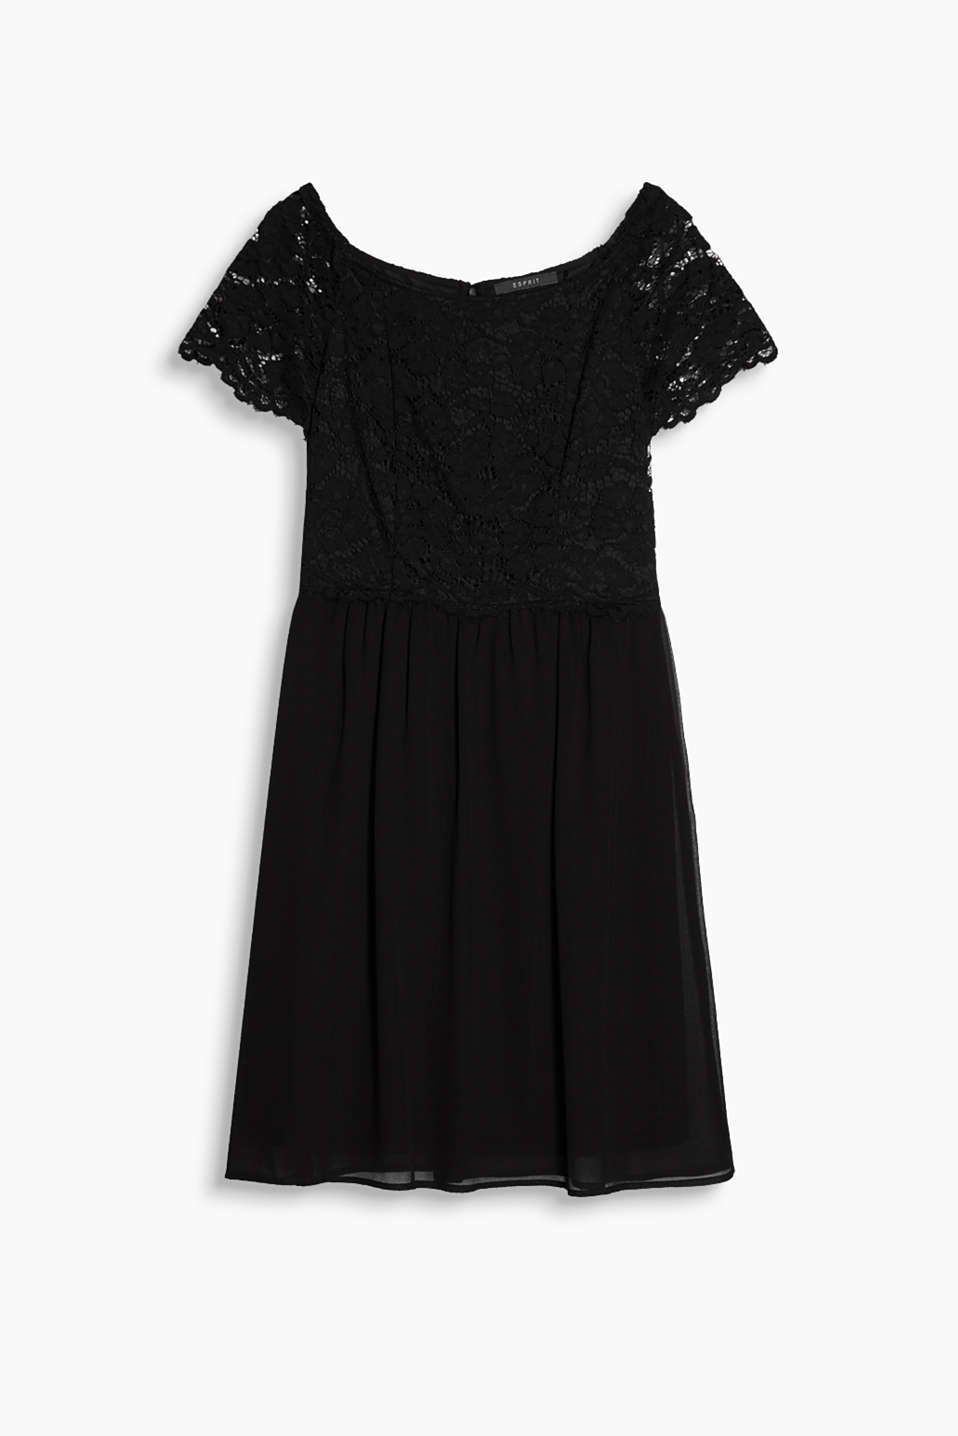 Flared dress in lace and chiffon with a swirling skirt